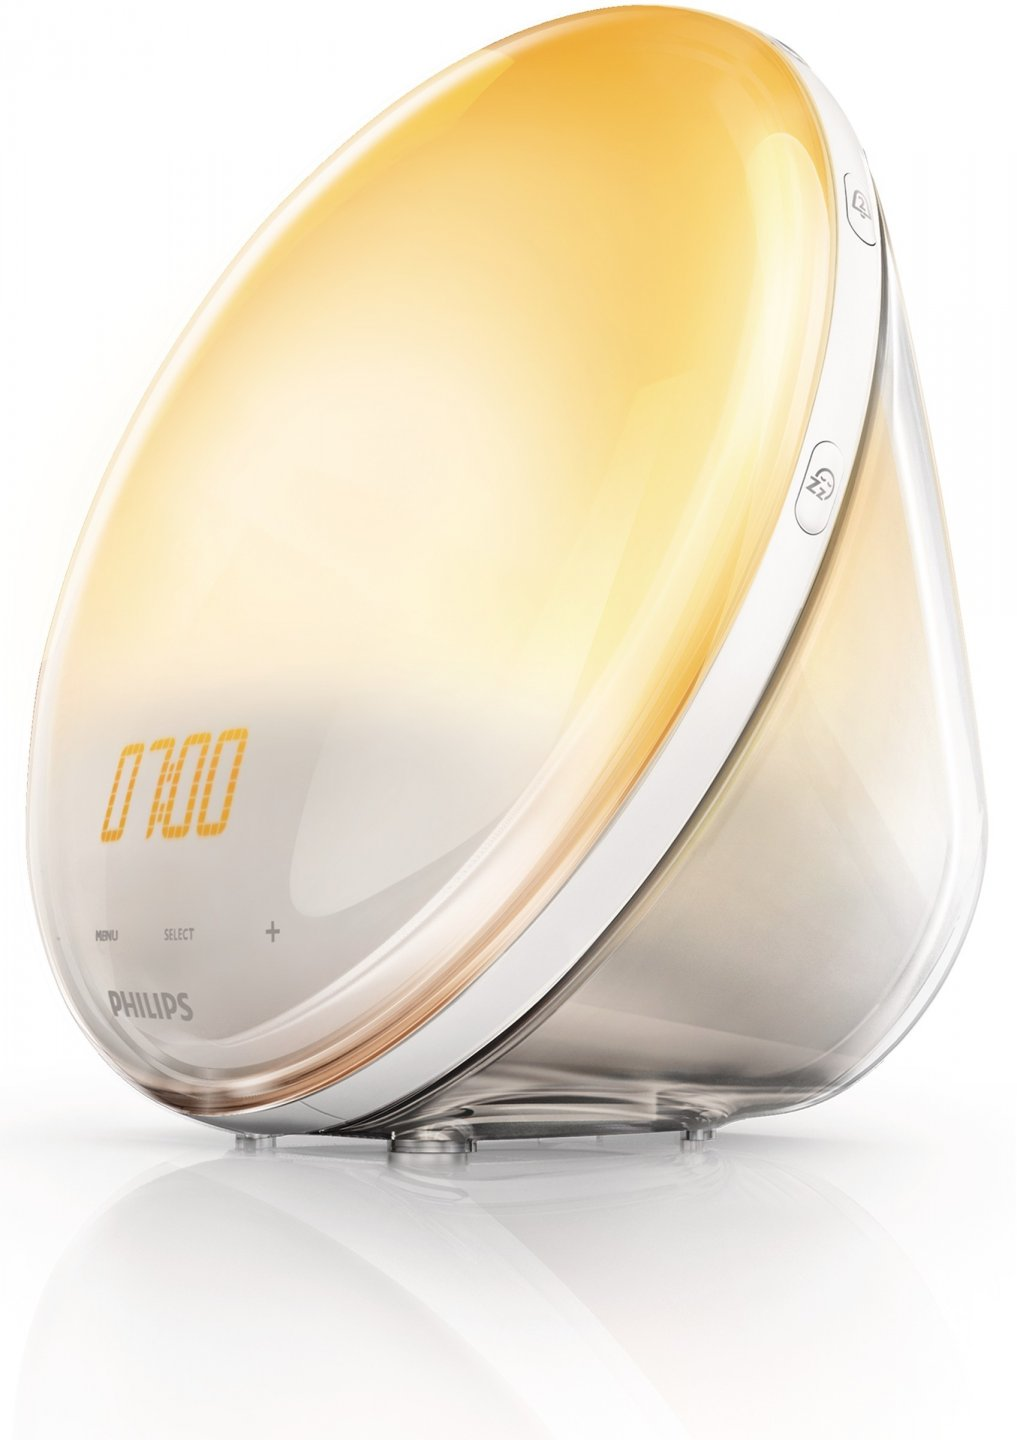 Будильник Philips HF3520/01 Wake Up Light световой будильник philips wake up light hf3520